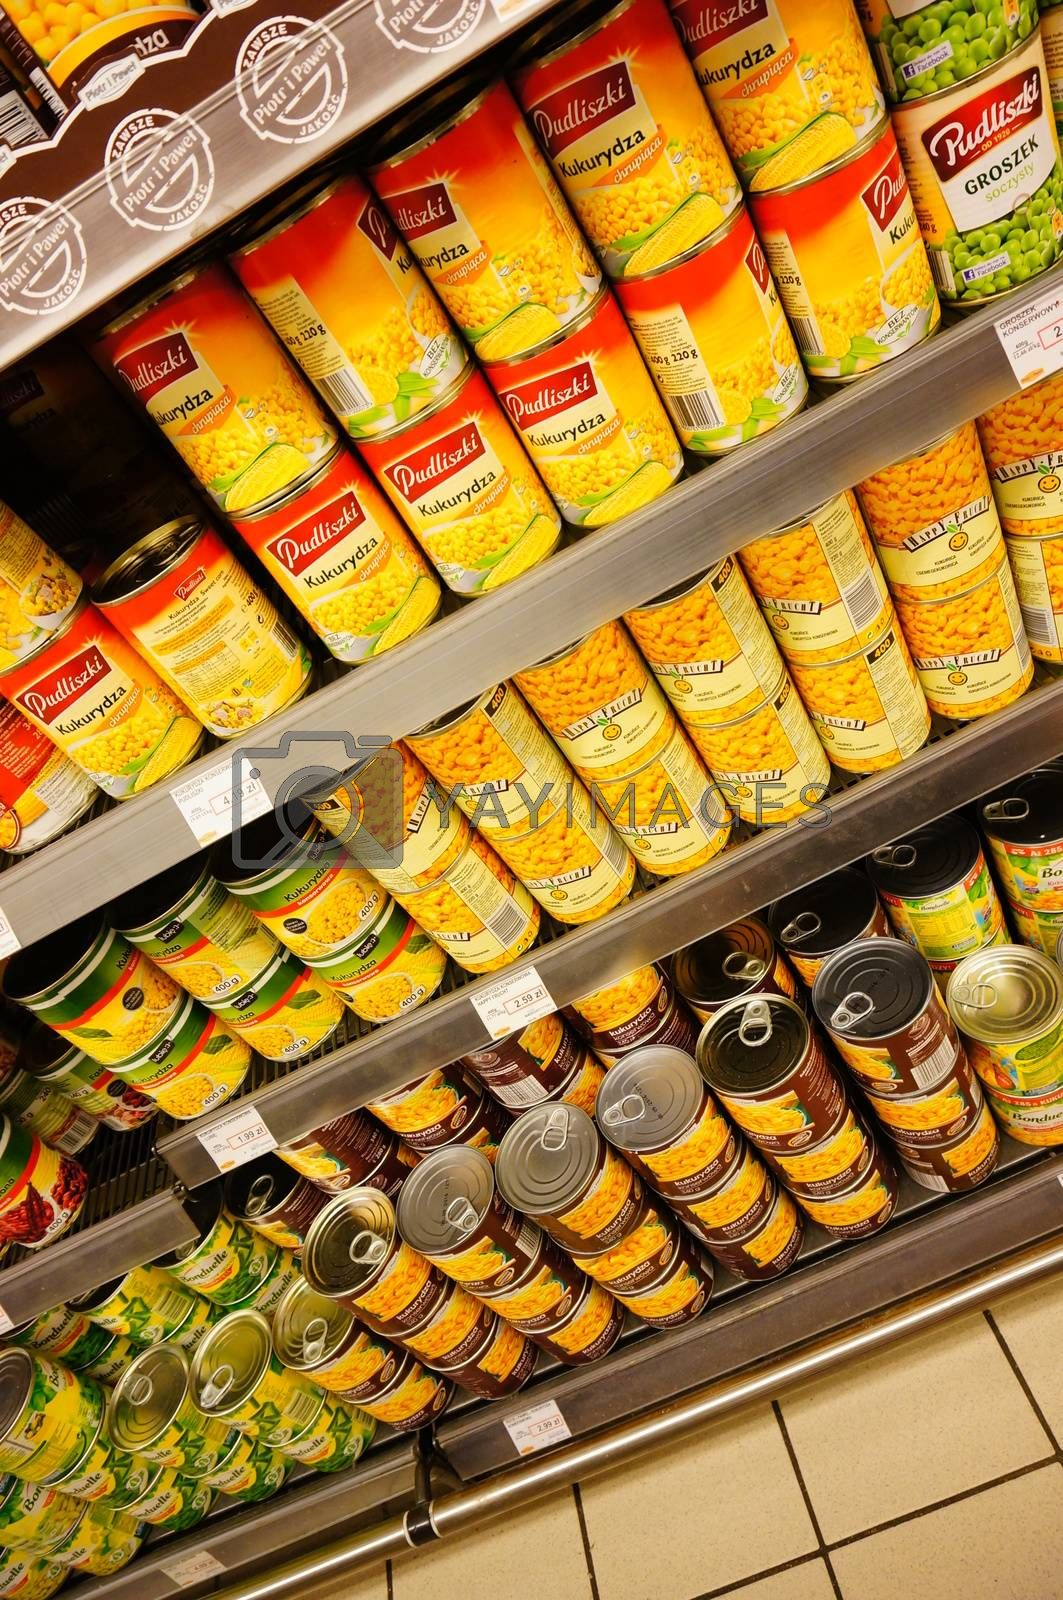 POZNAN, POLAND - JANUARY 27, 2014: Vegetables in cans in a supermarket